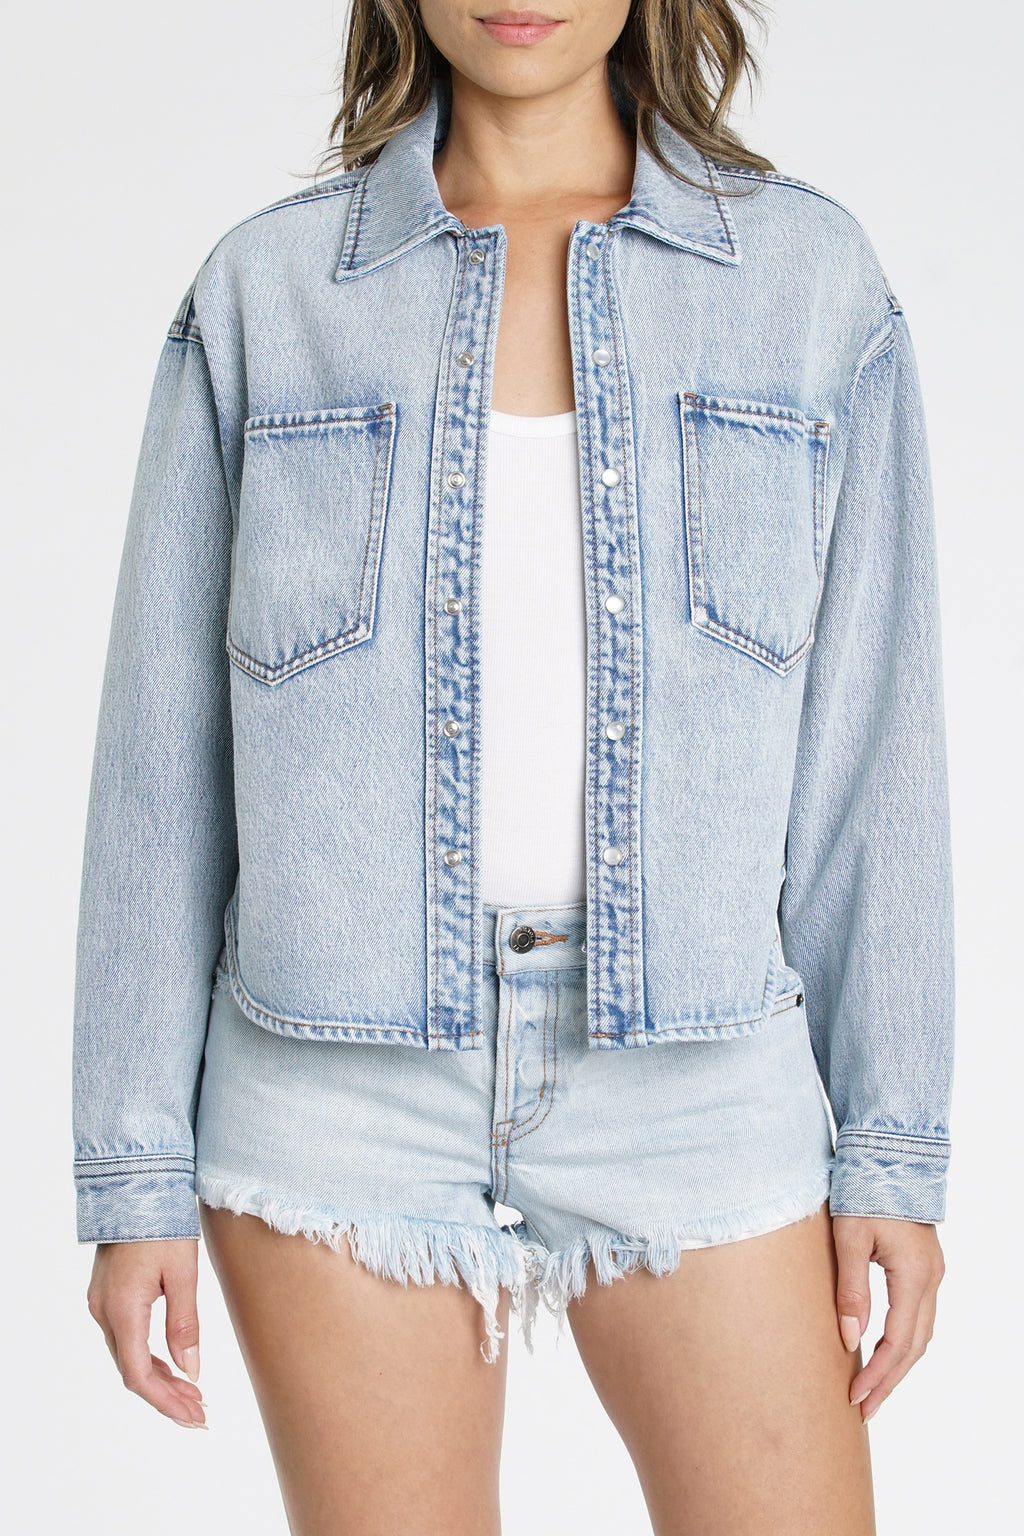 Andrea Square Shoulder Jacket - Montreal